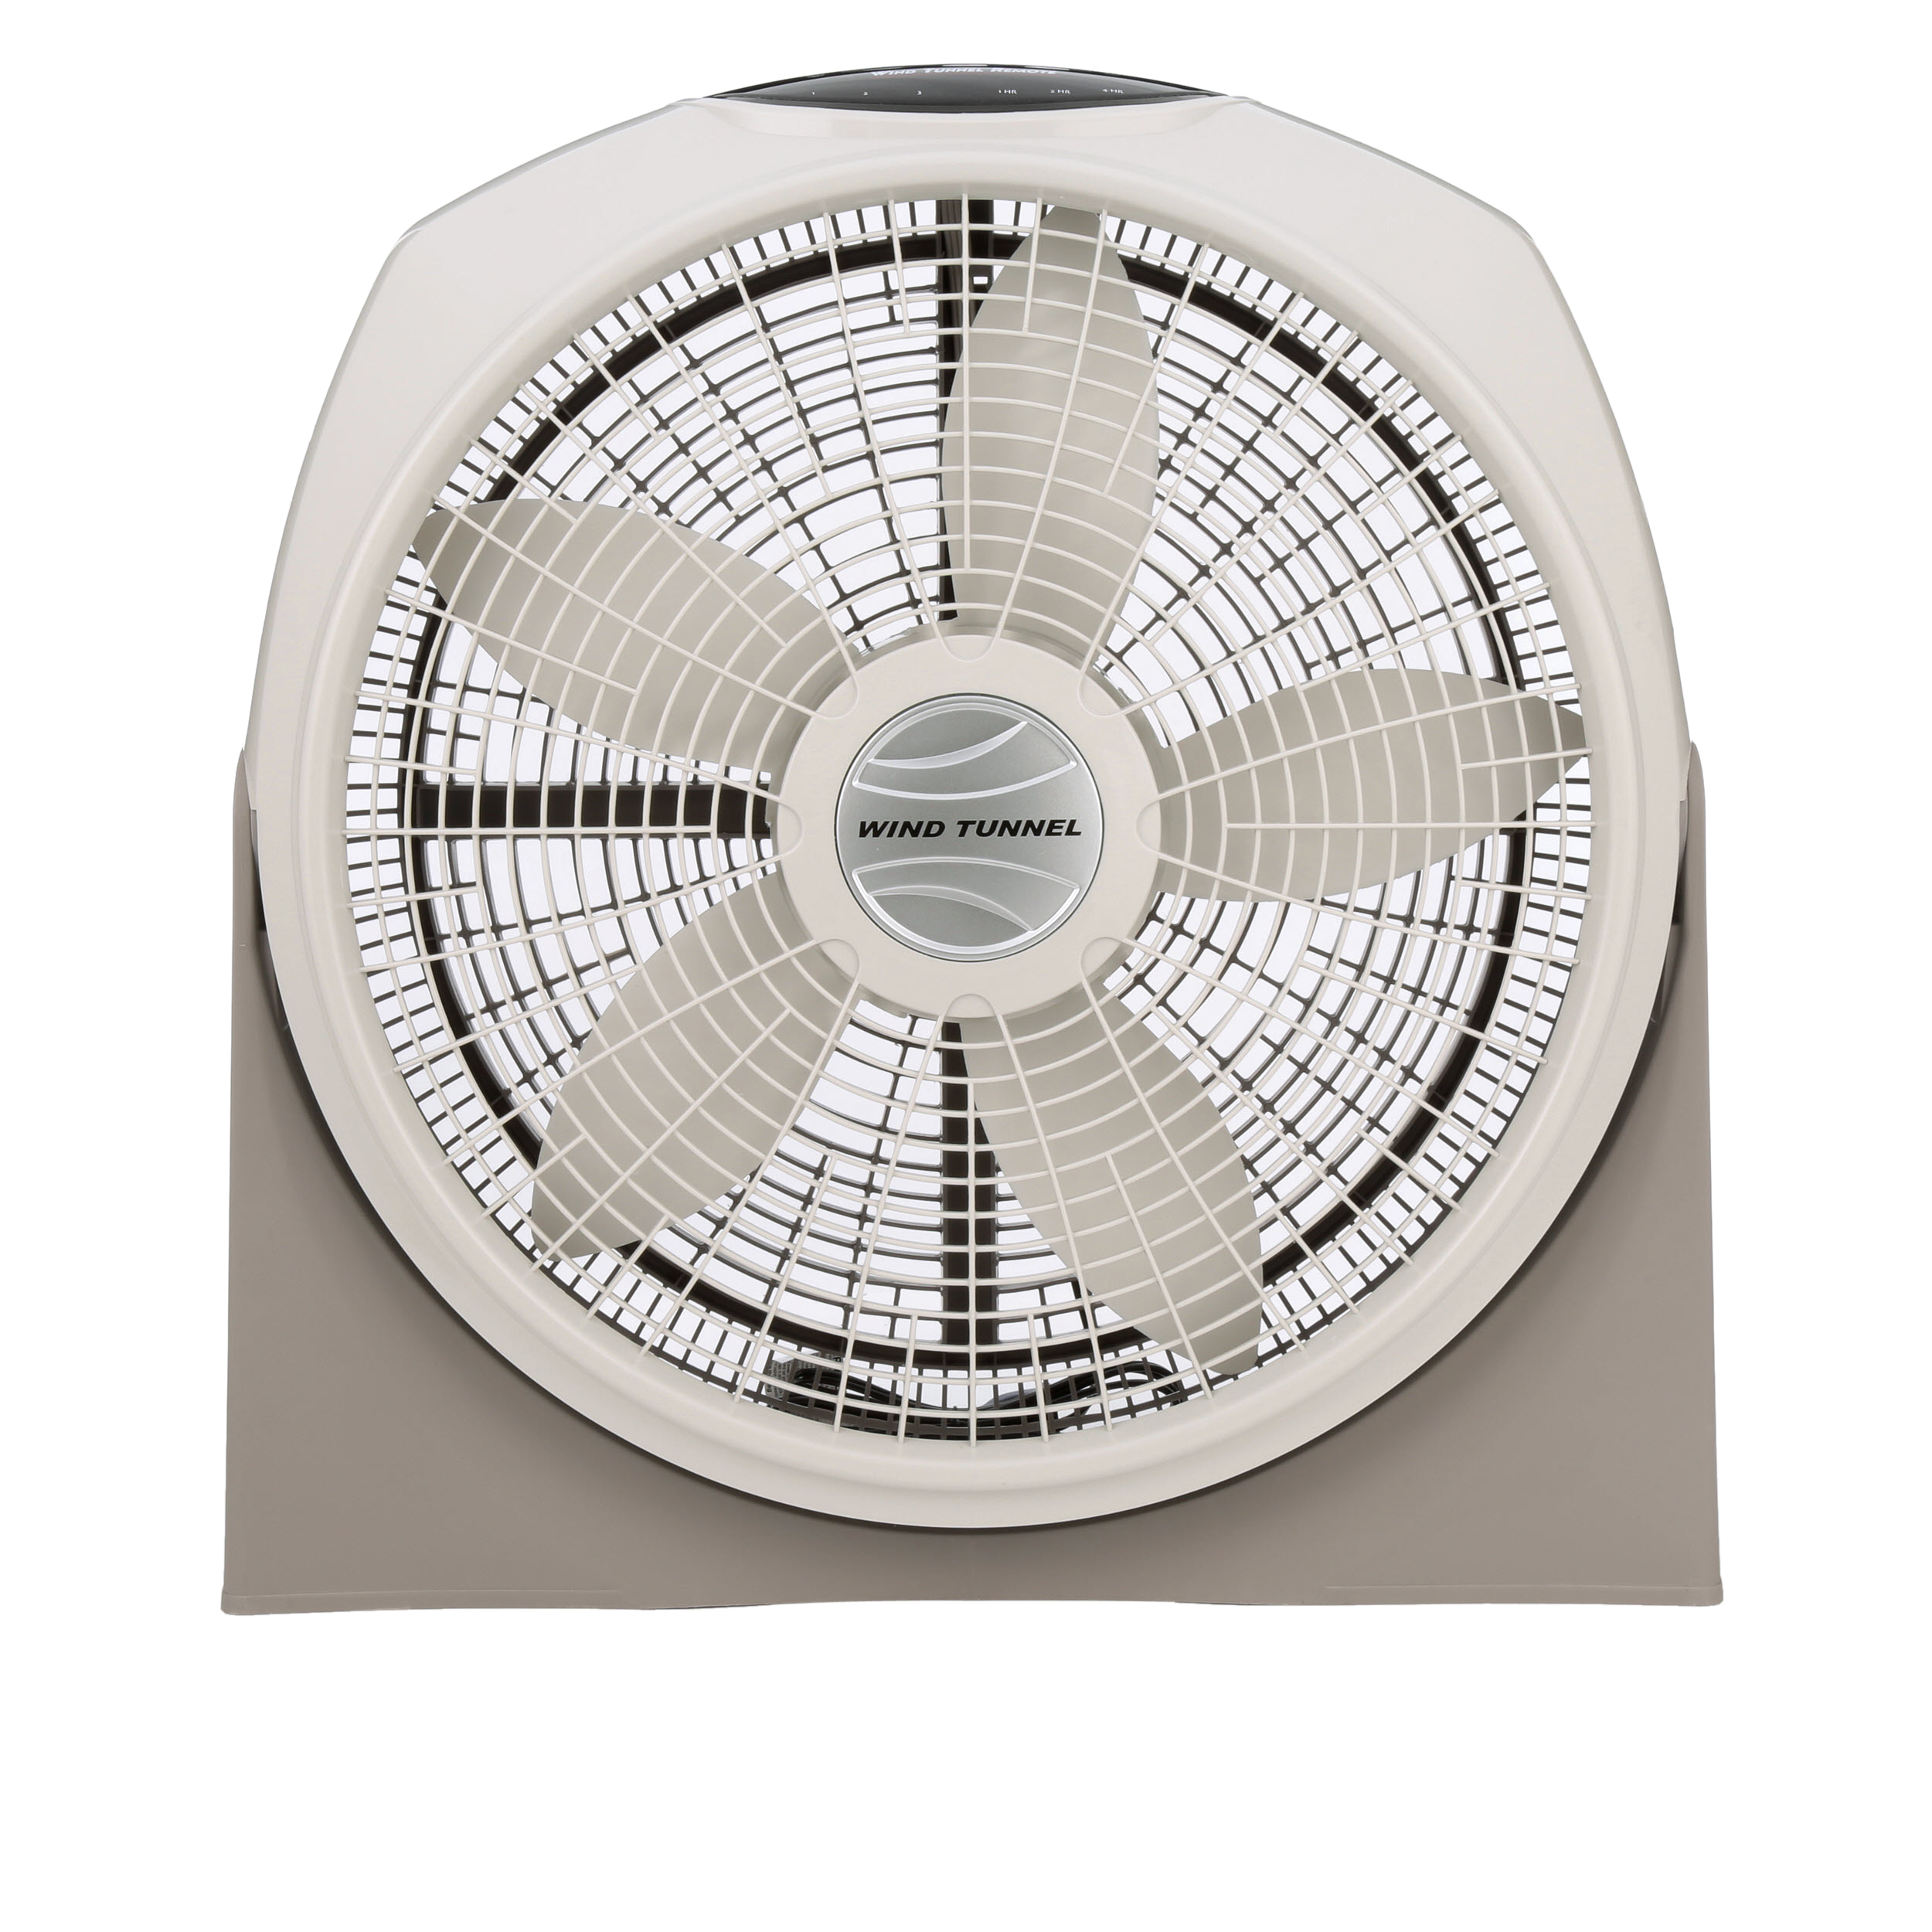 "Lasko 20"" Wind Tunnel 3-Speed Fan, Model #A20700, Gray with Remote by Lasko Products, LLC"